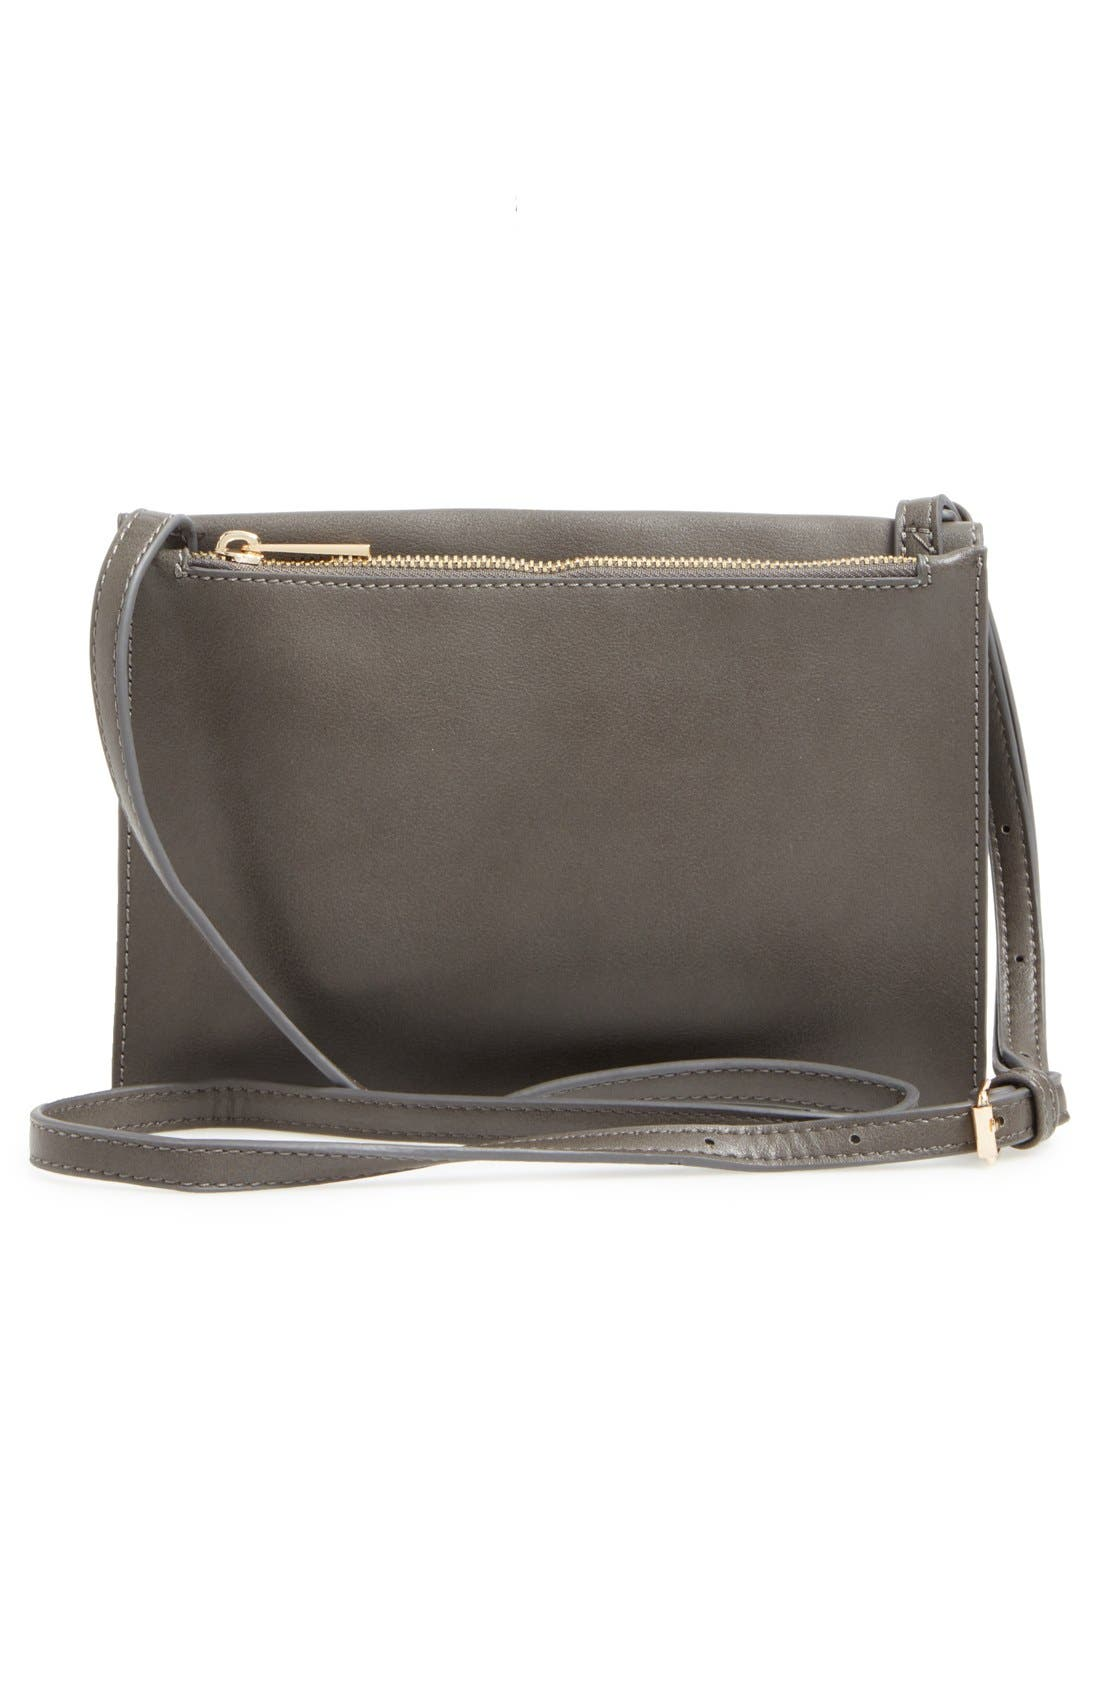 SOLE SOCIETY, 'Vanessa' Faux Leather Crossbody Bag, Alternate thumbnail 3, color, 020